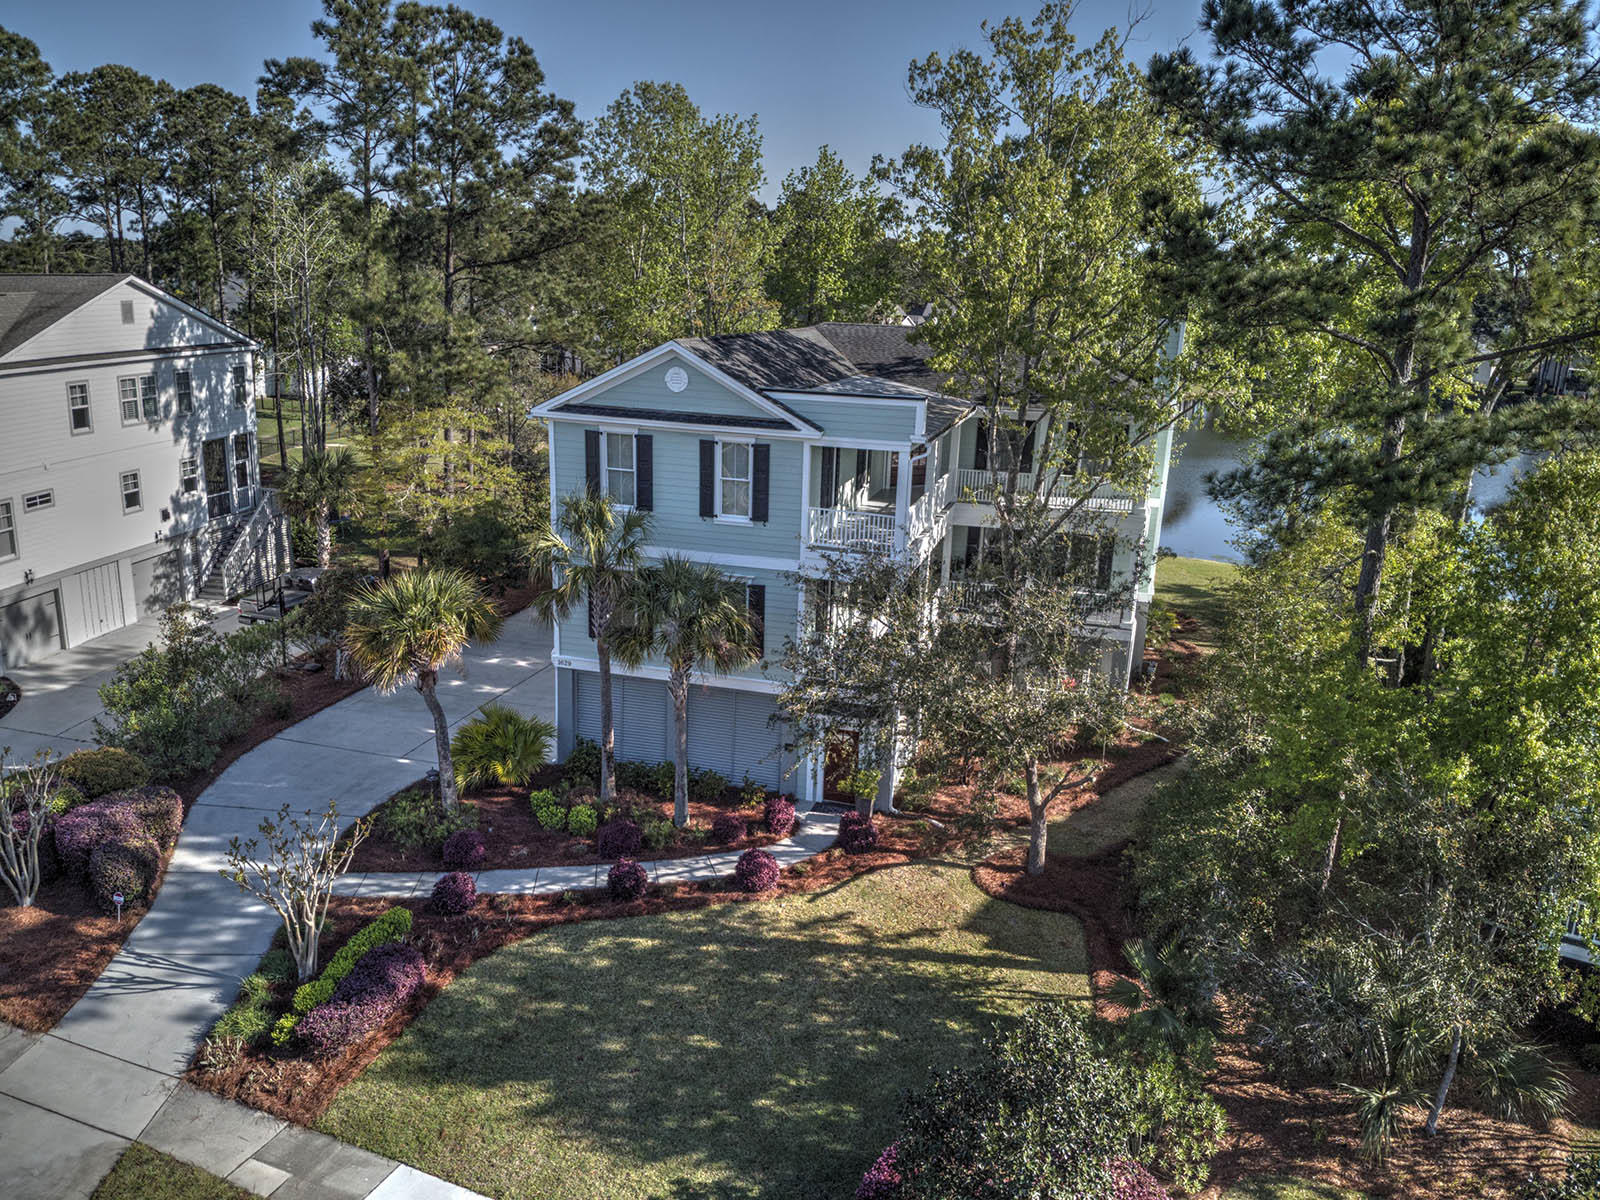 Rivertowne Country Club Homes For Sale - 1629 Rivertowne Country Club, Mount Pleasant, SC - 7